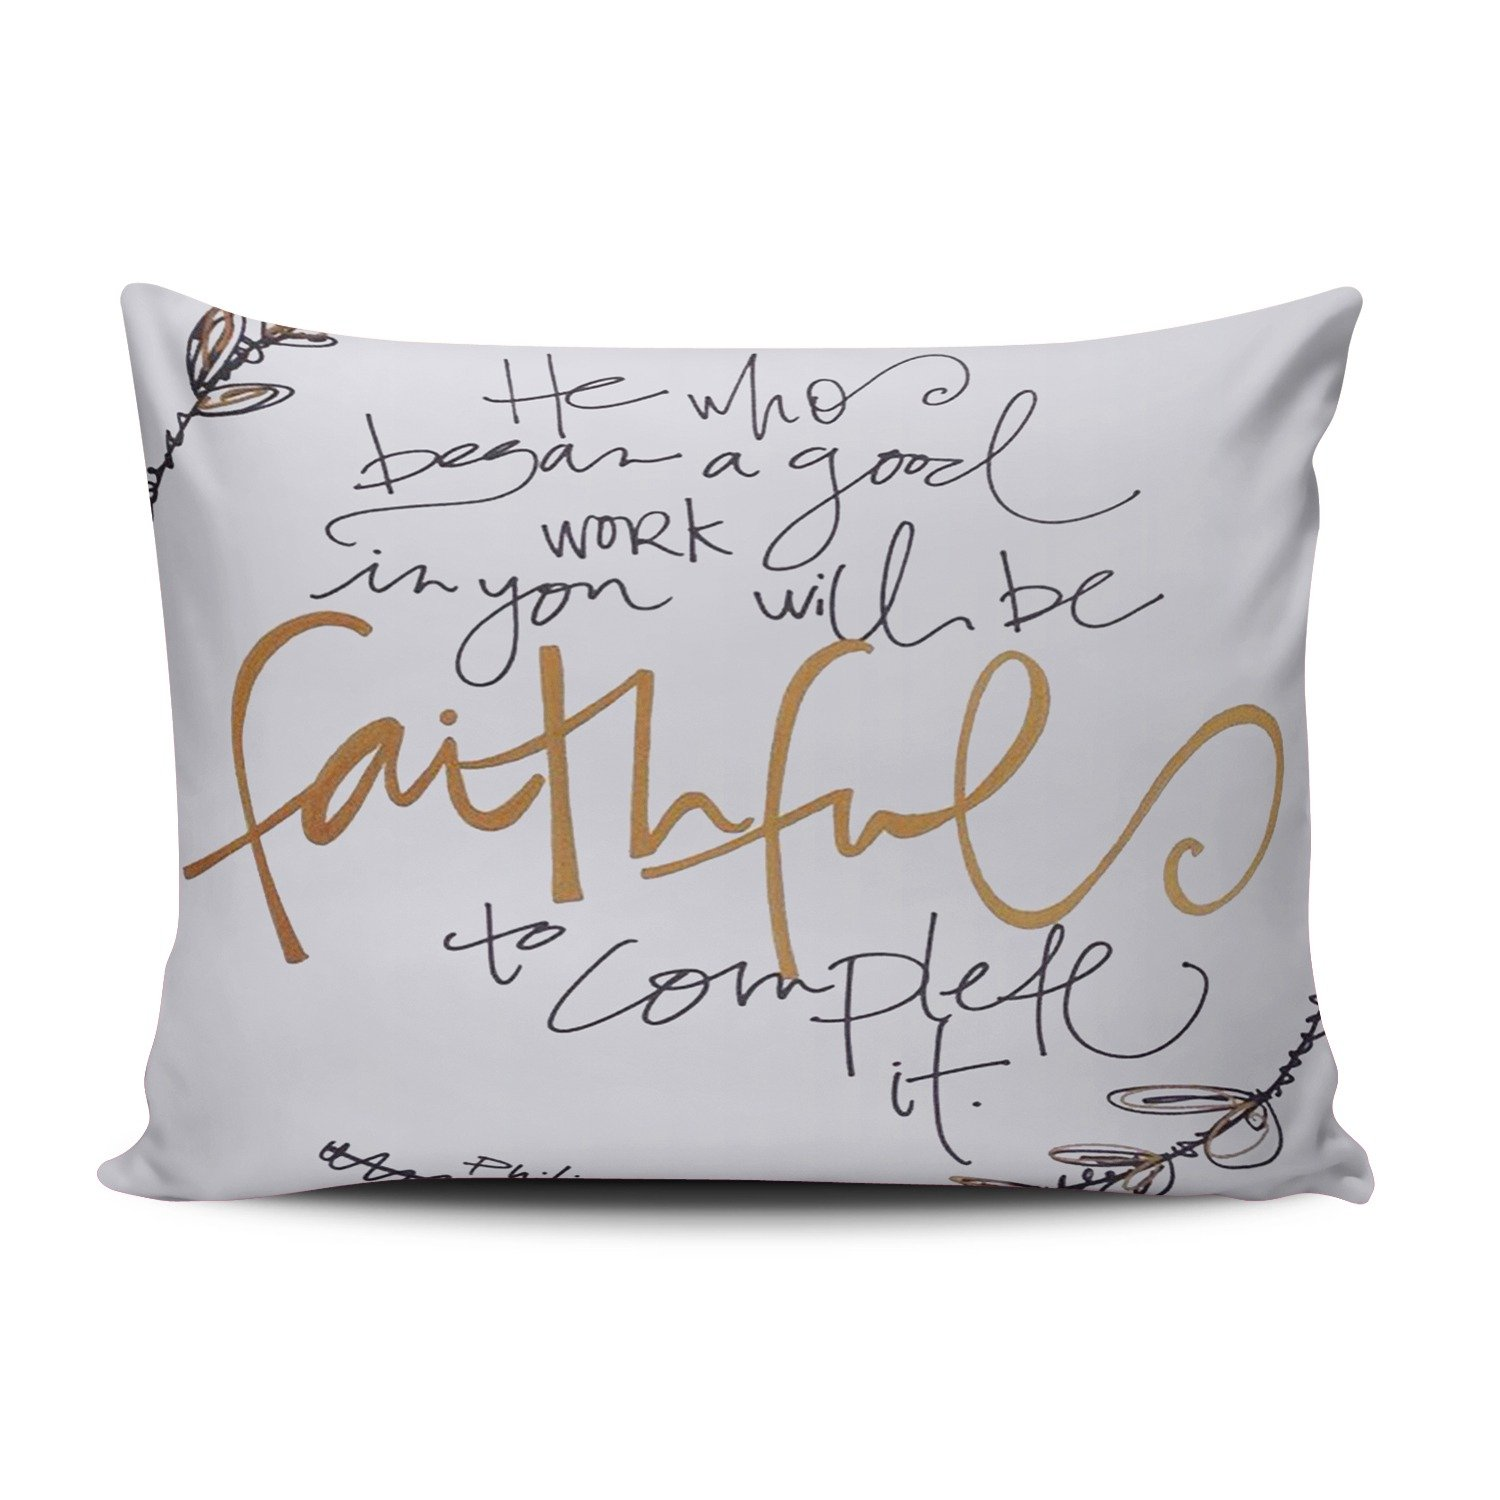 KEIBIKE Personalized Christian Bible Verse Rectangle Decorative Pillowcases Cute Zippered Queen Pillow Covers Cases 20x30 Inches One Sided